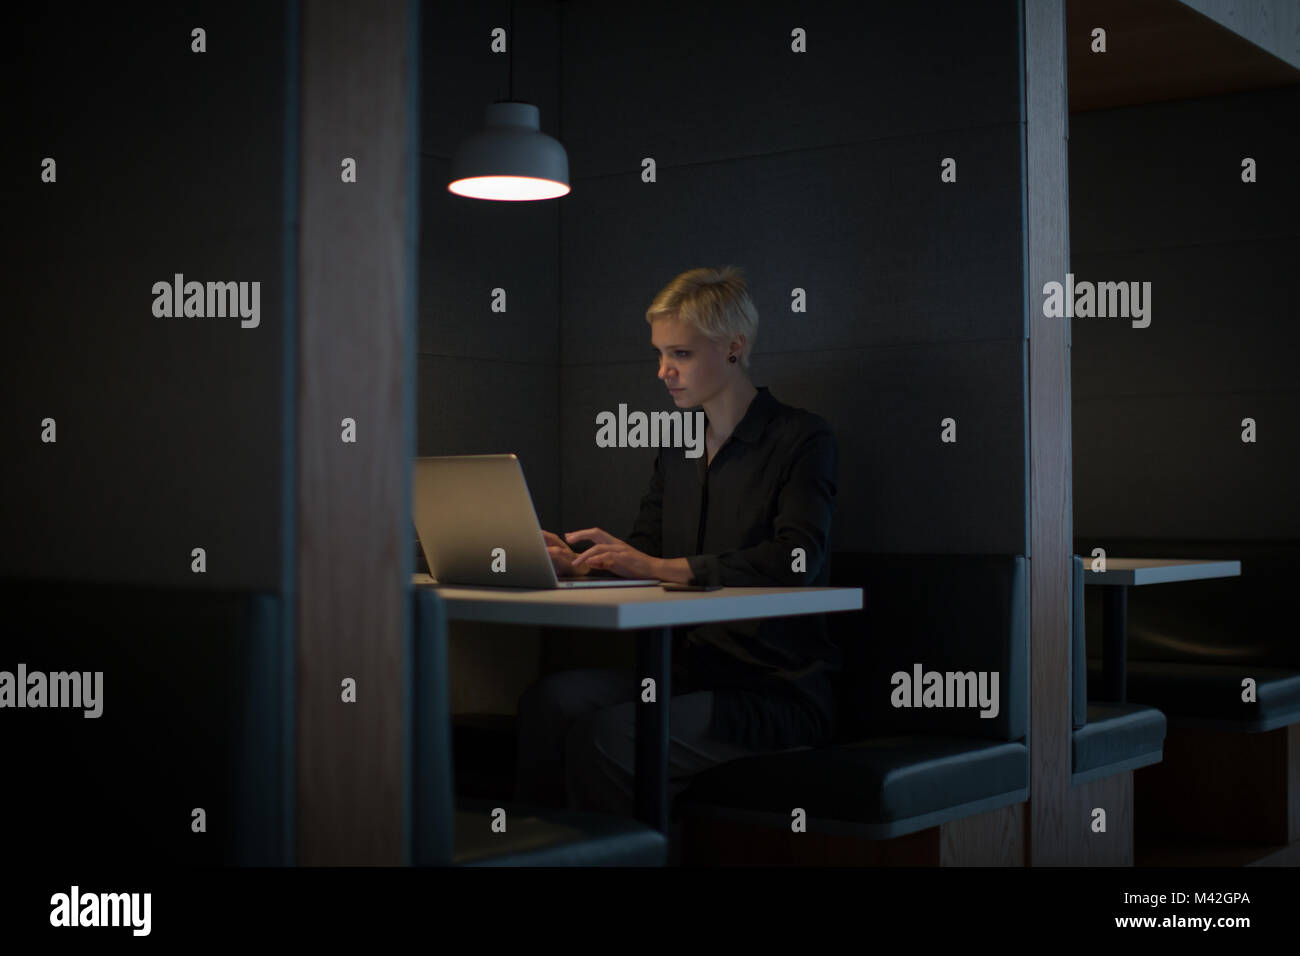 Businesswoman working late at night in office alone - Stock Image